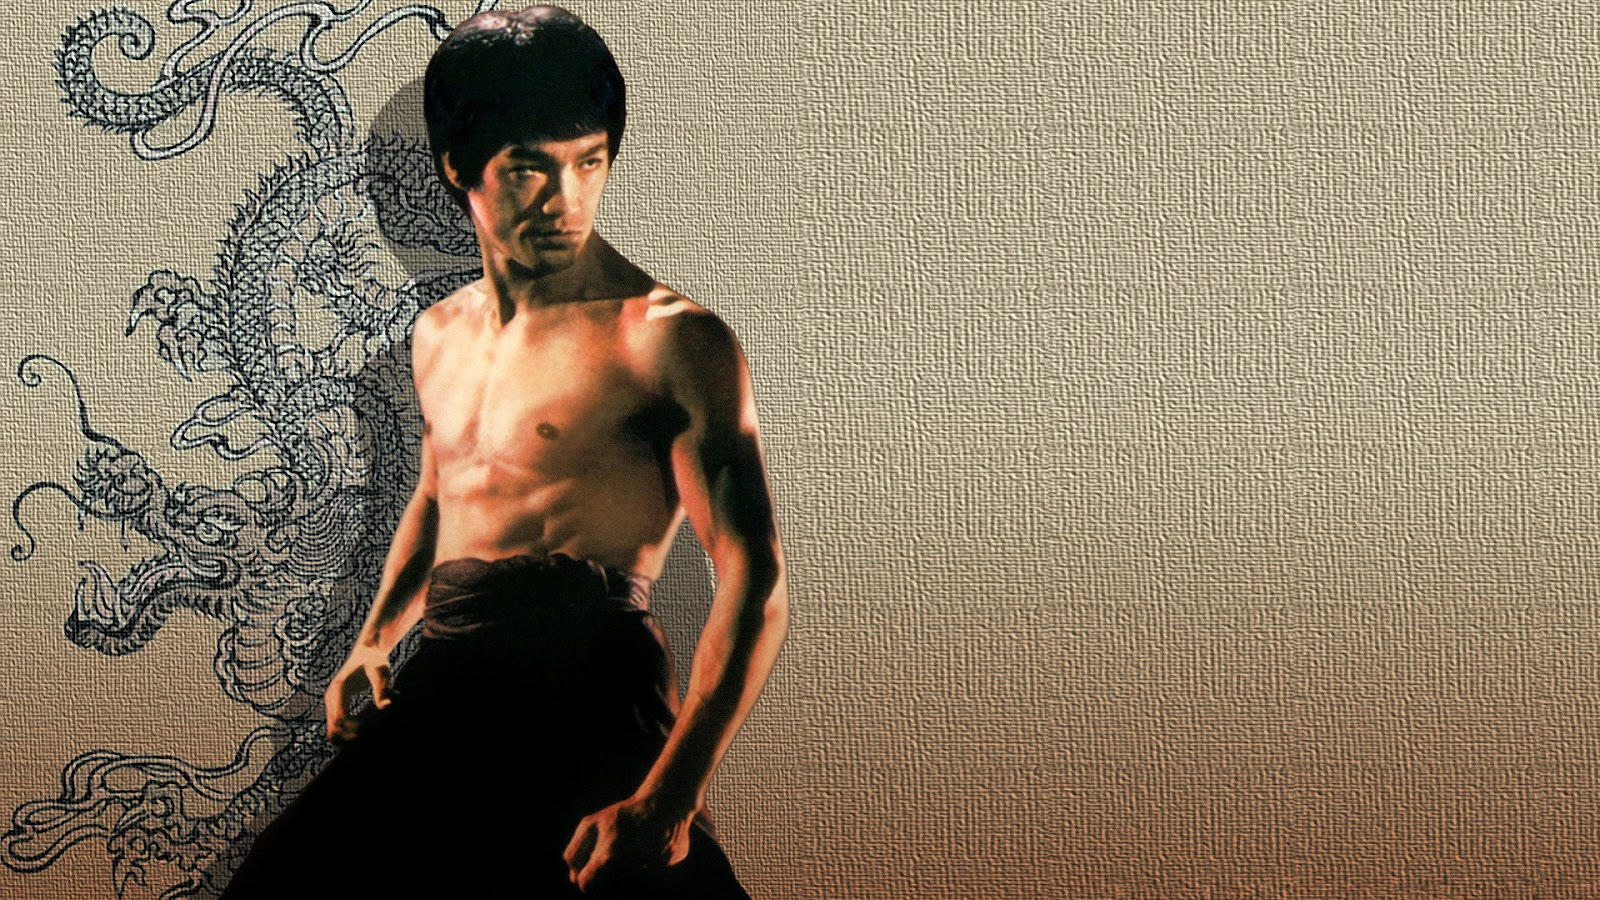 Bruce Lee HD Wallpaper for  Free Download on MoboMarket 1600x900